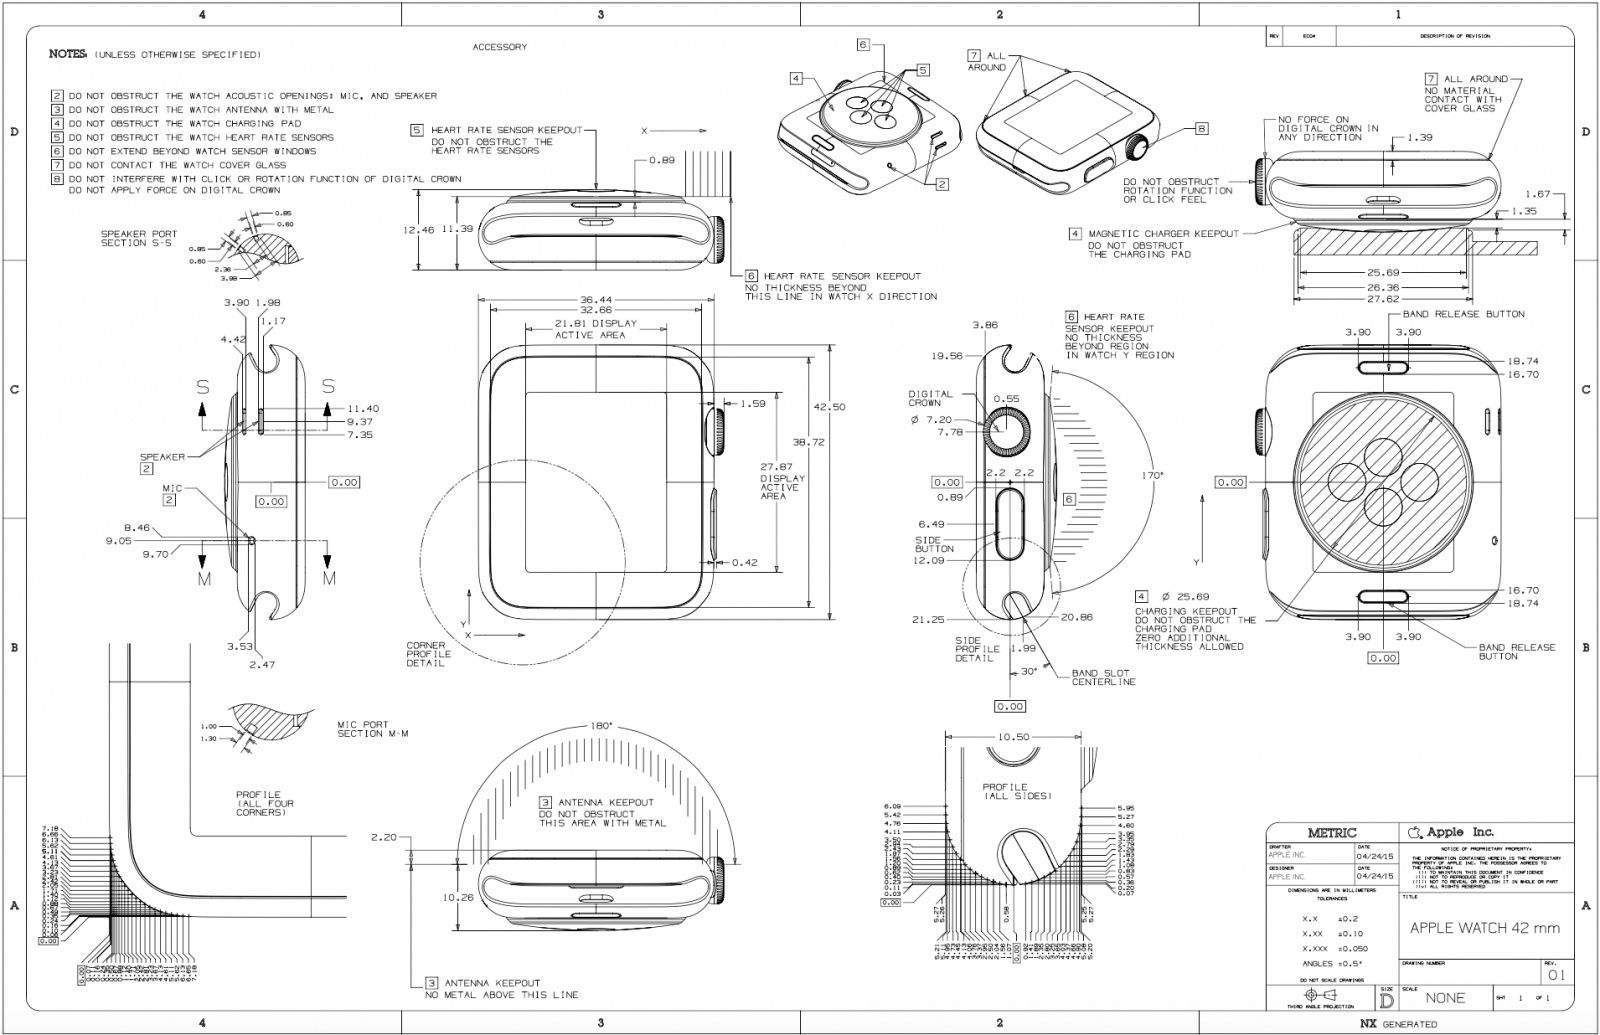 Wiring Diagram For Iphone Usb Cable as well Vidamount On Wall Apple Ipod Touch Mount Enclosure Encasement Chassis in addition Usb Pin Wiring Diagram further Alpine 3522s Wiring Diagram in addition Design Nerds Will Love This Beautiful Apple Watch Schematic. on ipod plug wiring diagram